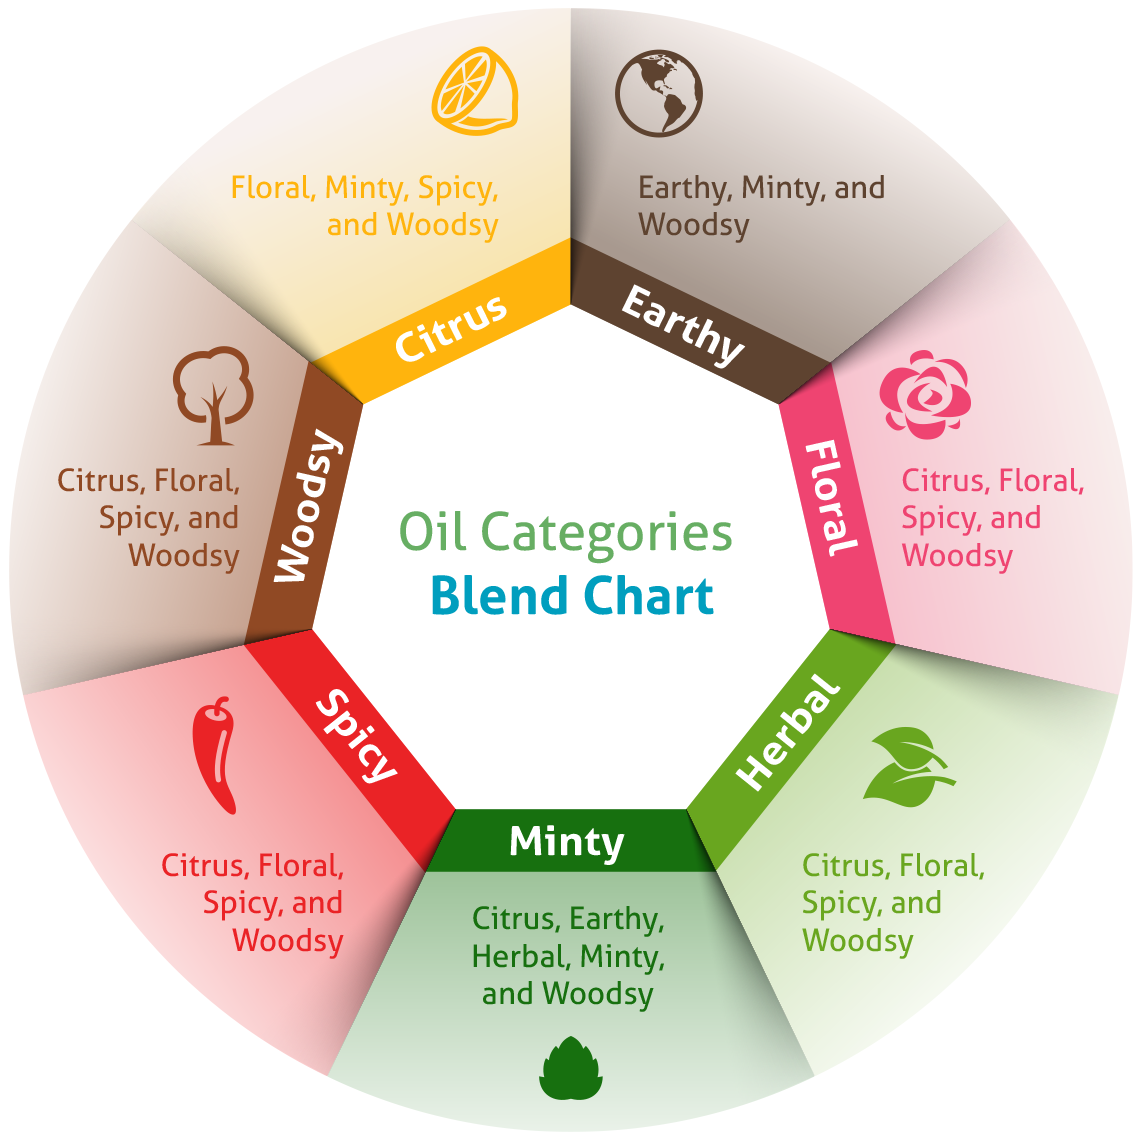 Discover the essential oil categories that blend well together